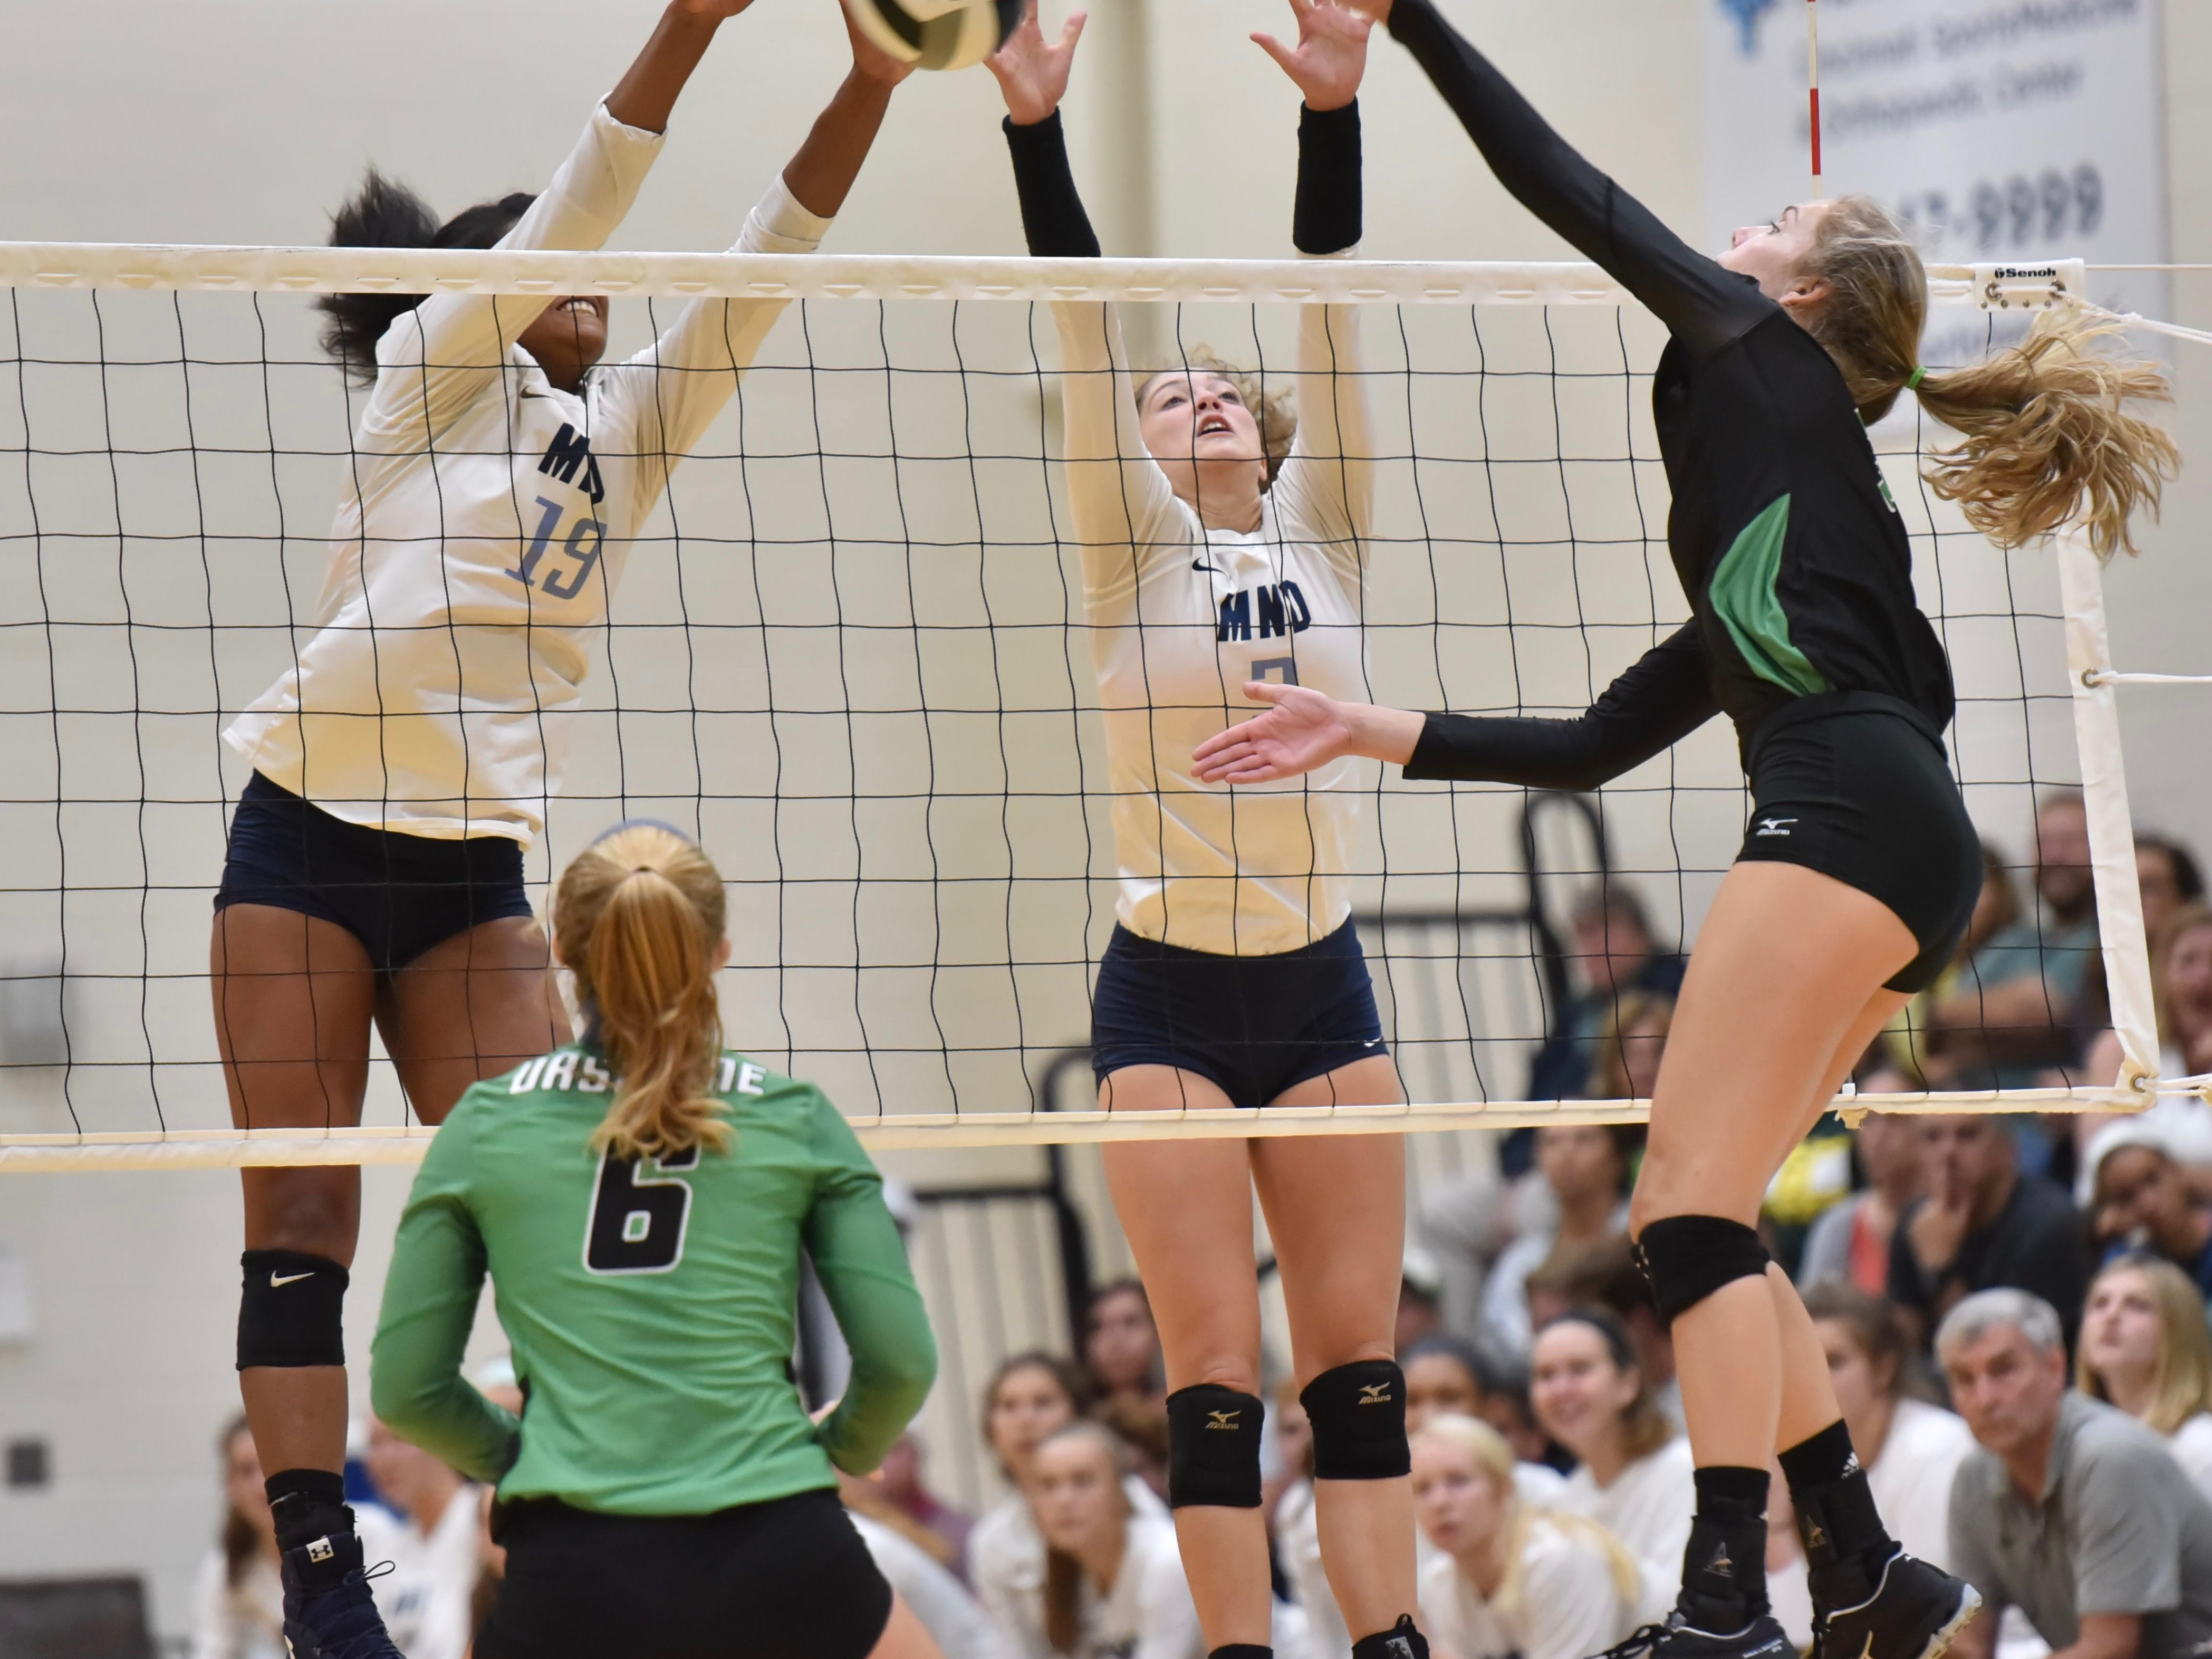 Mount Notre Dame's Ramei Jackson and Sam Wolf block an Ursuline shot Tuesday, Sept. 11, 2018 at Ursuline Academy